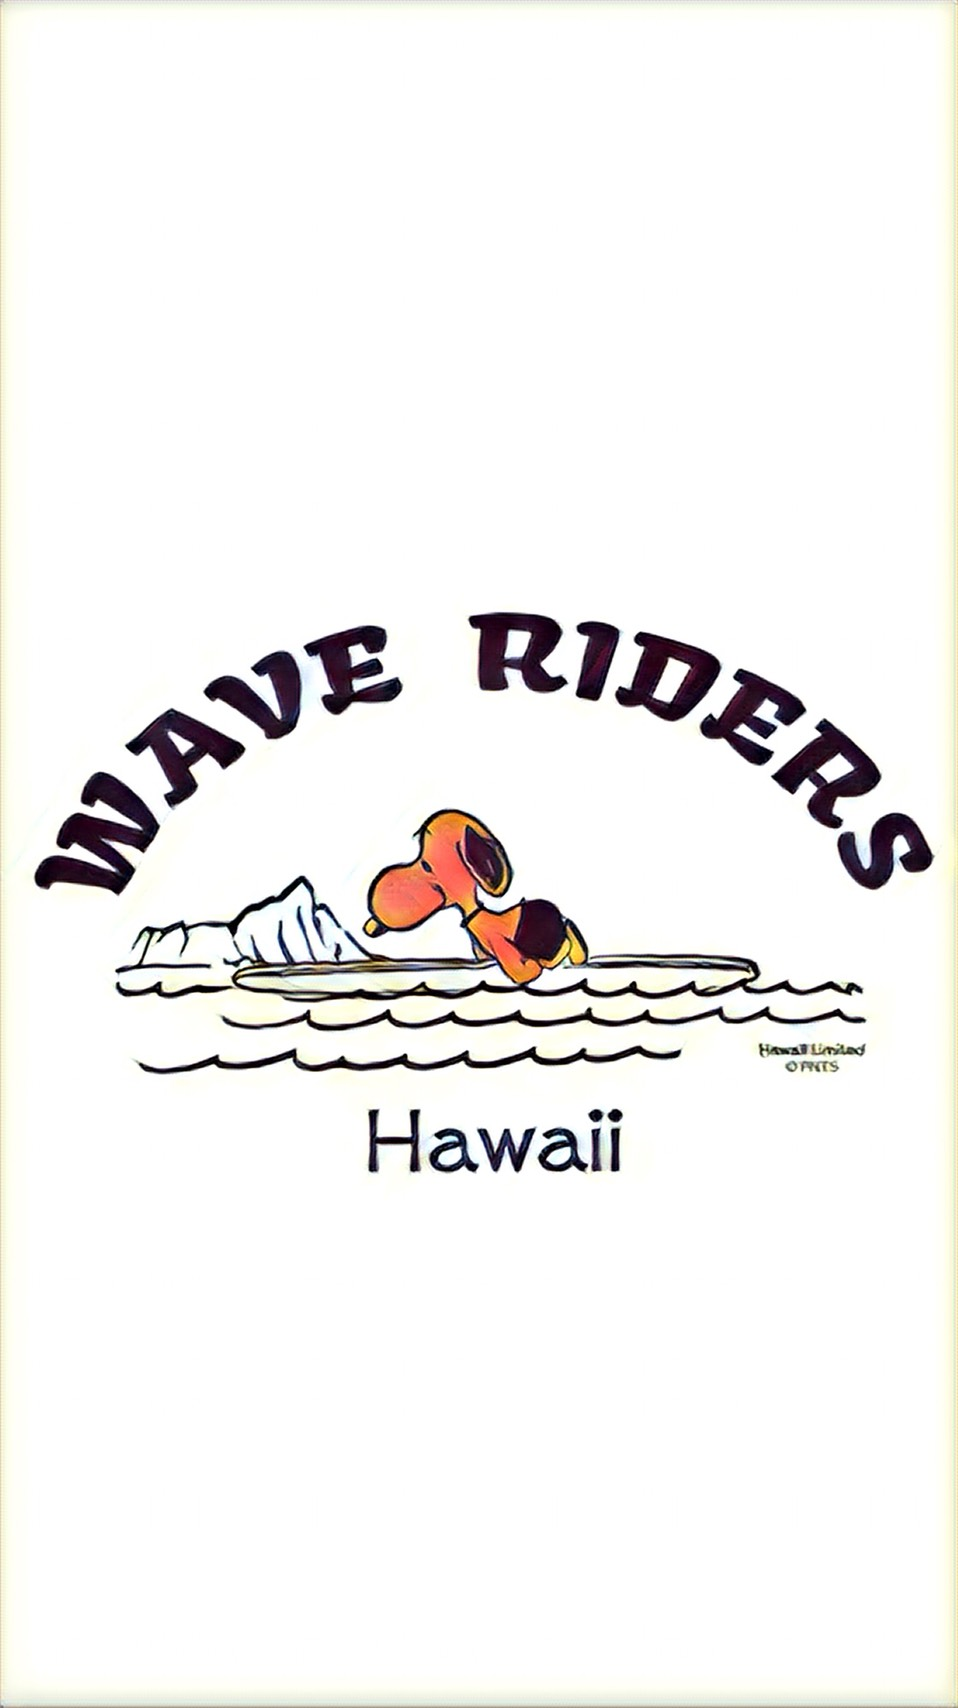 Snoopy Hawaii Wave Riders Iphone Wallpaper By Possibility8 On